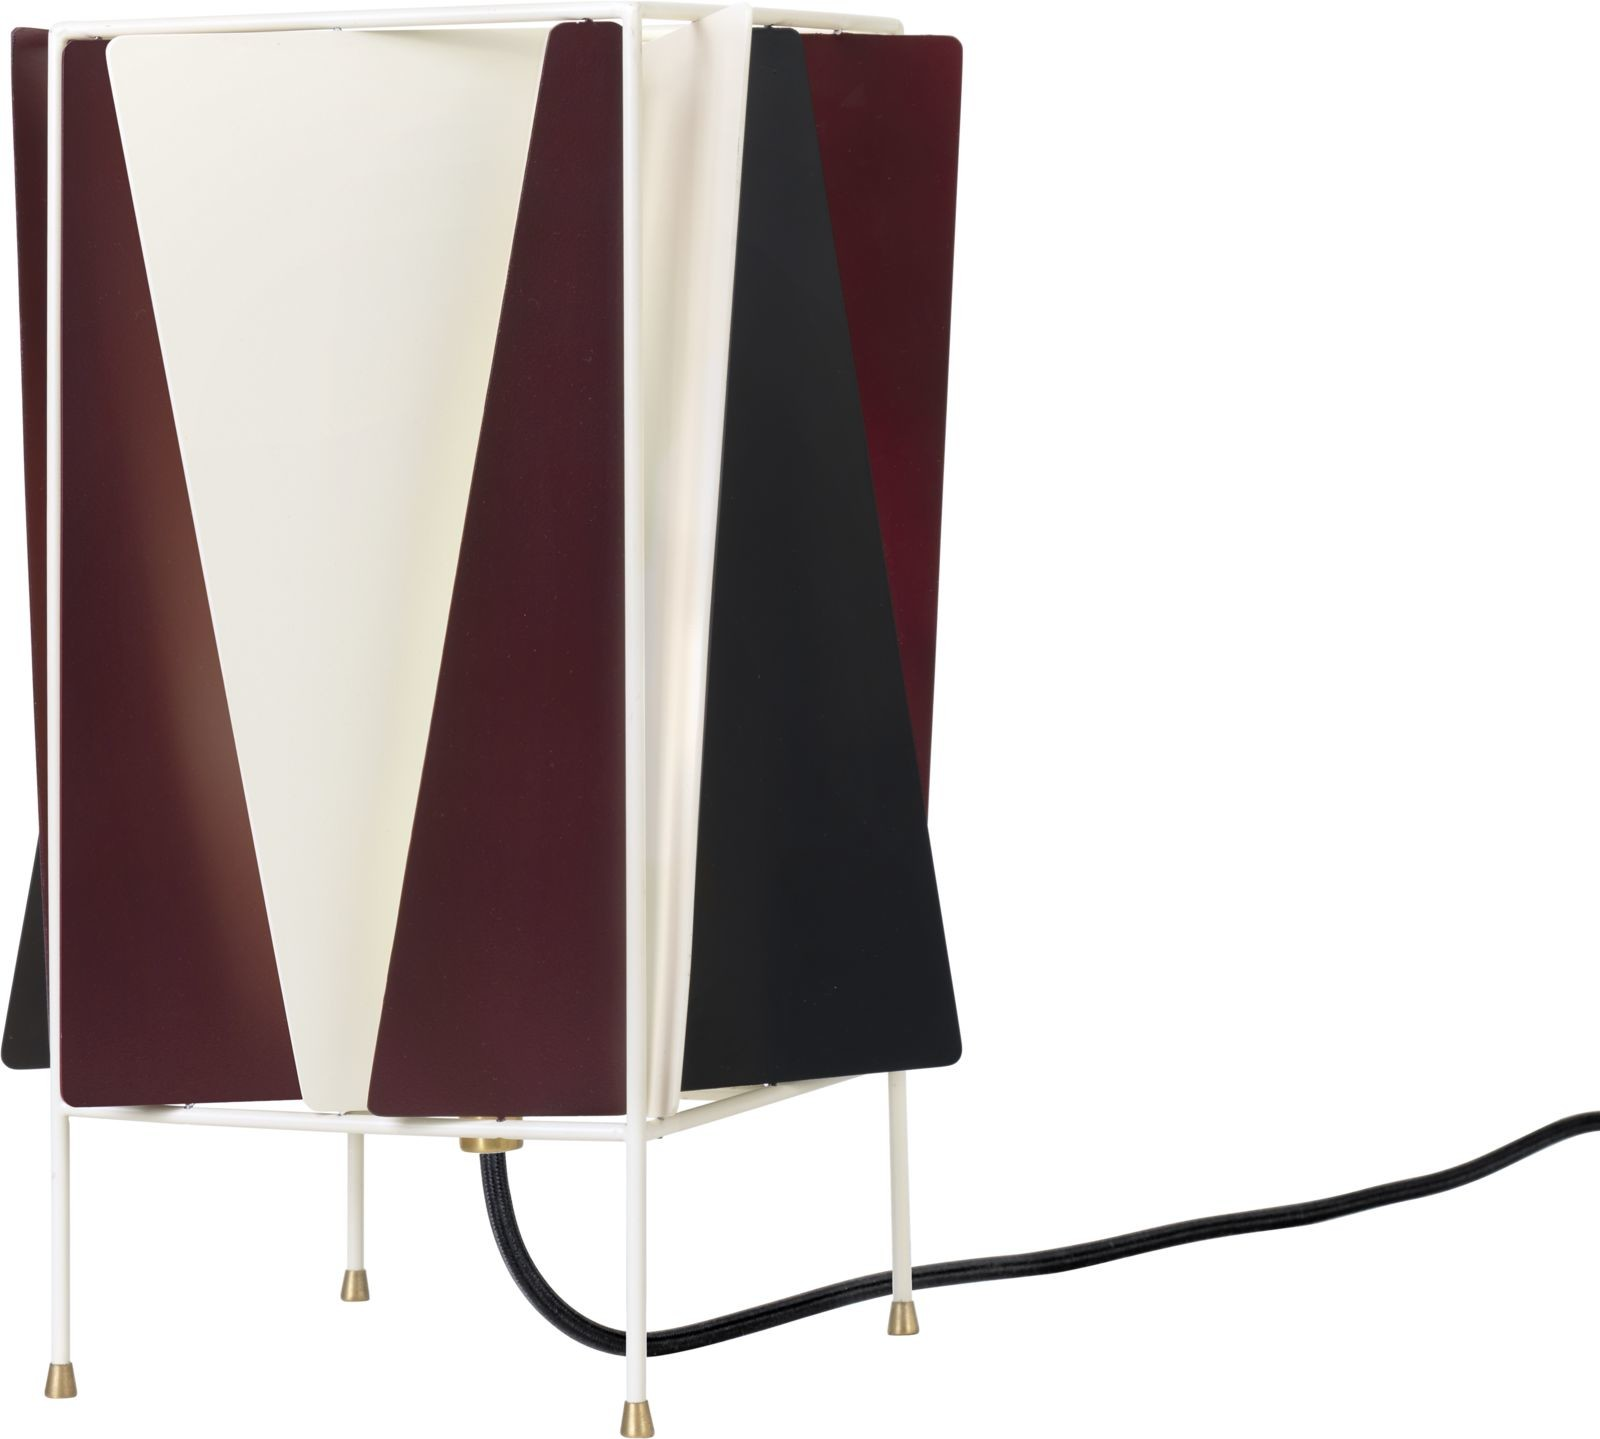 B-4 Table Lamp Chianti Red Semi Matt